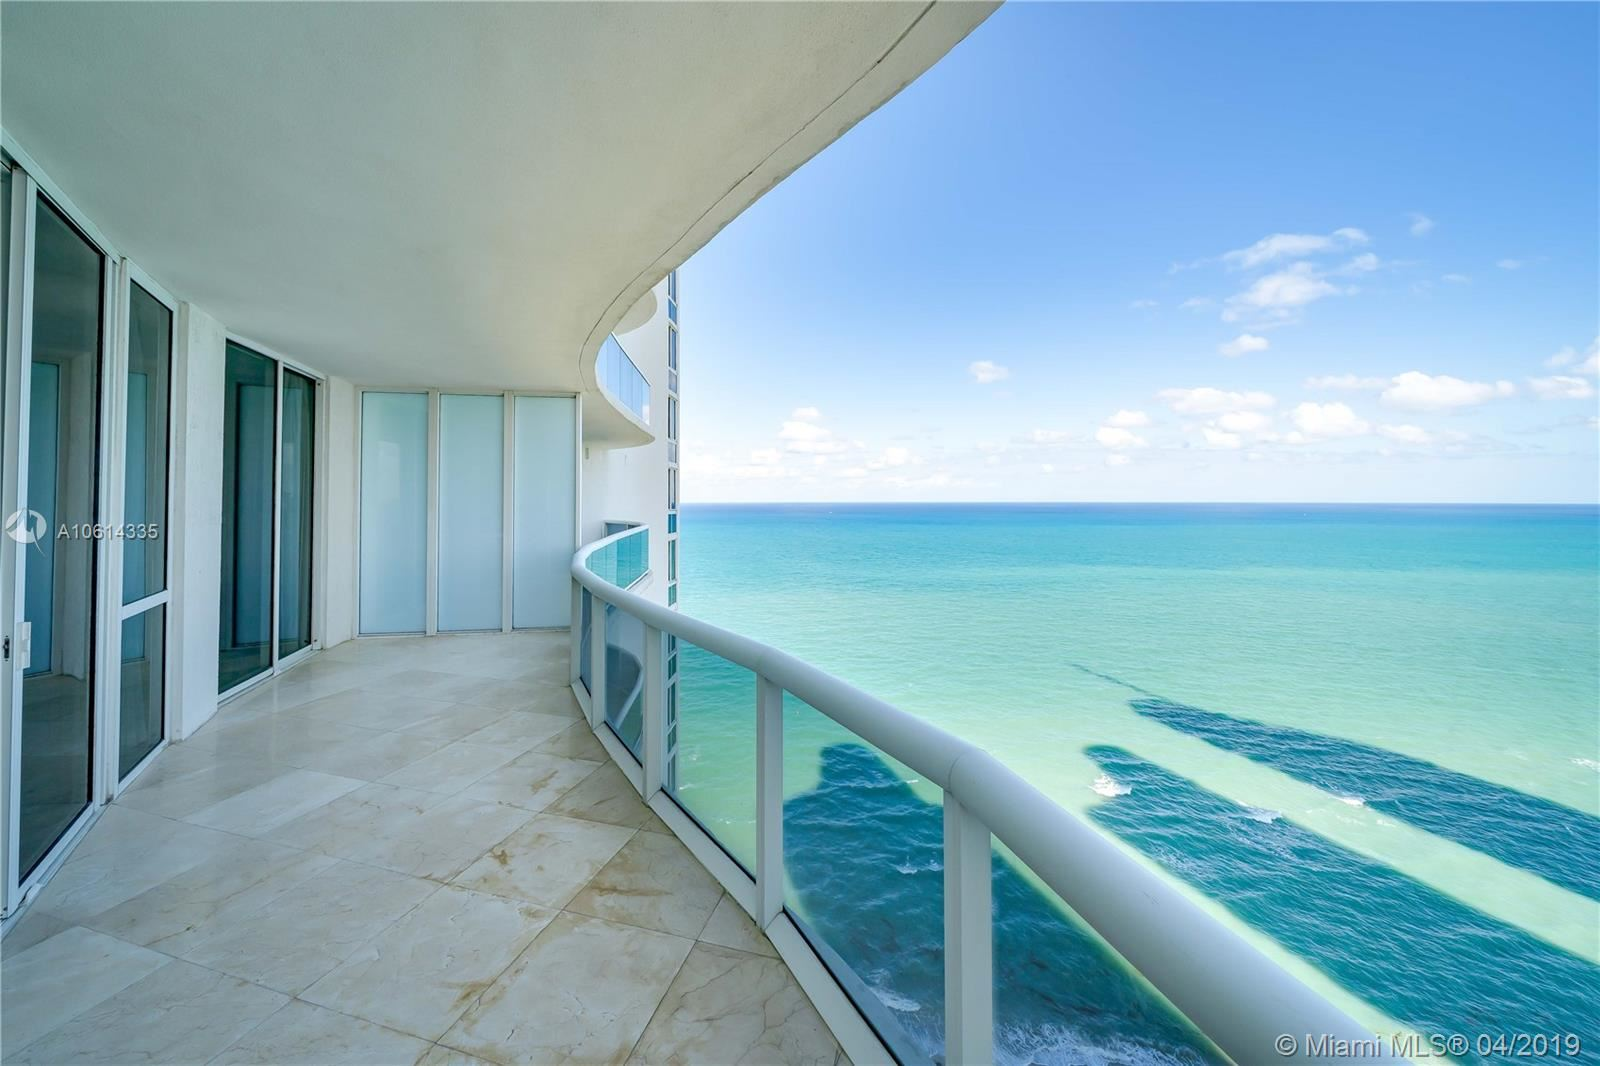 16001 Collins Ave. #2707, Sunny Isles, FL 33160 - #: A10614335